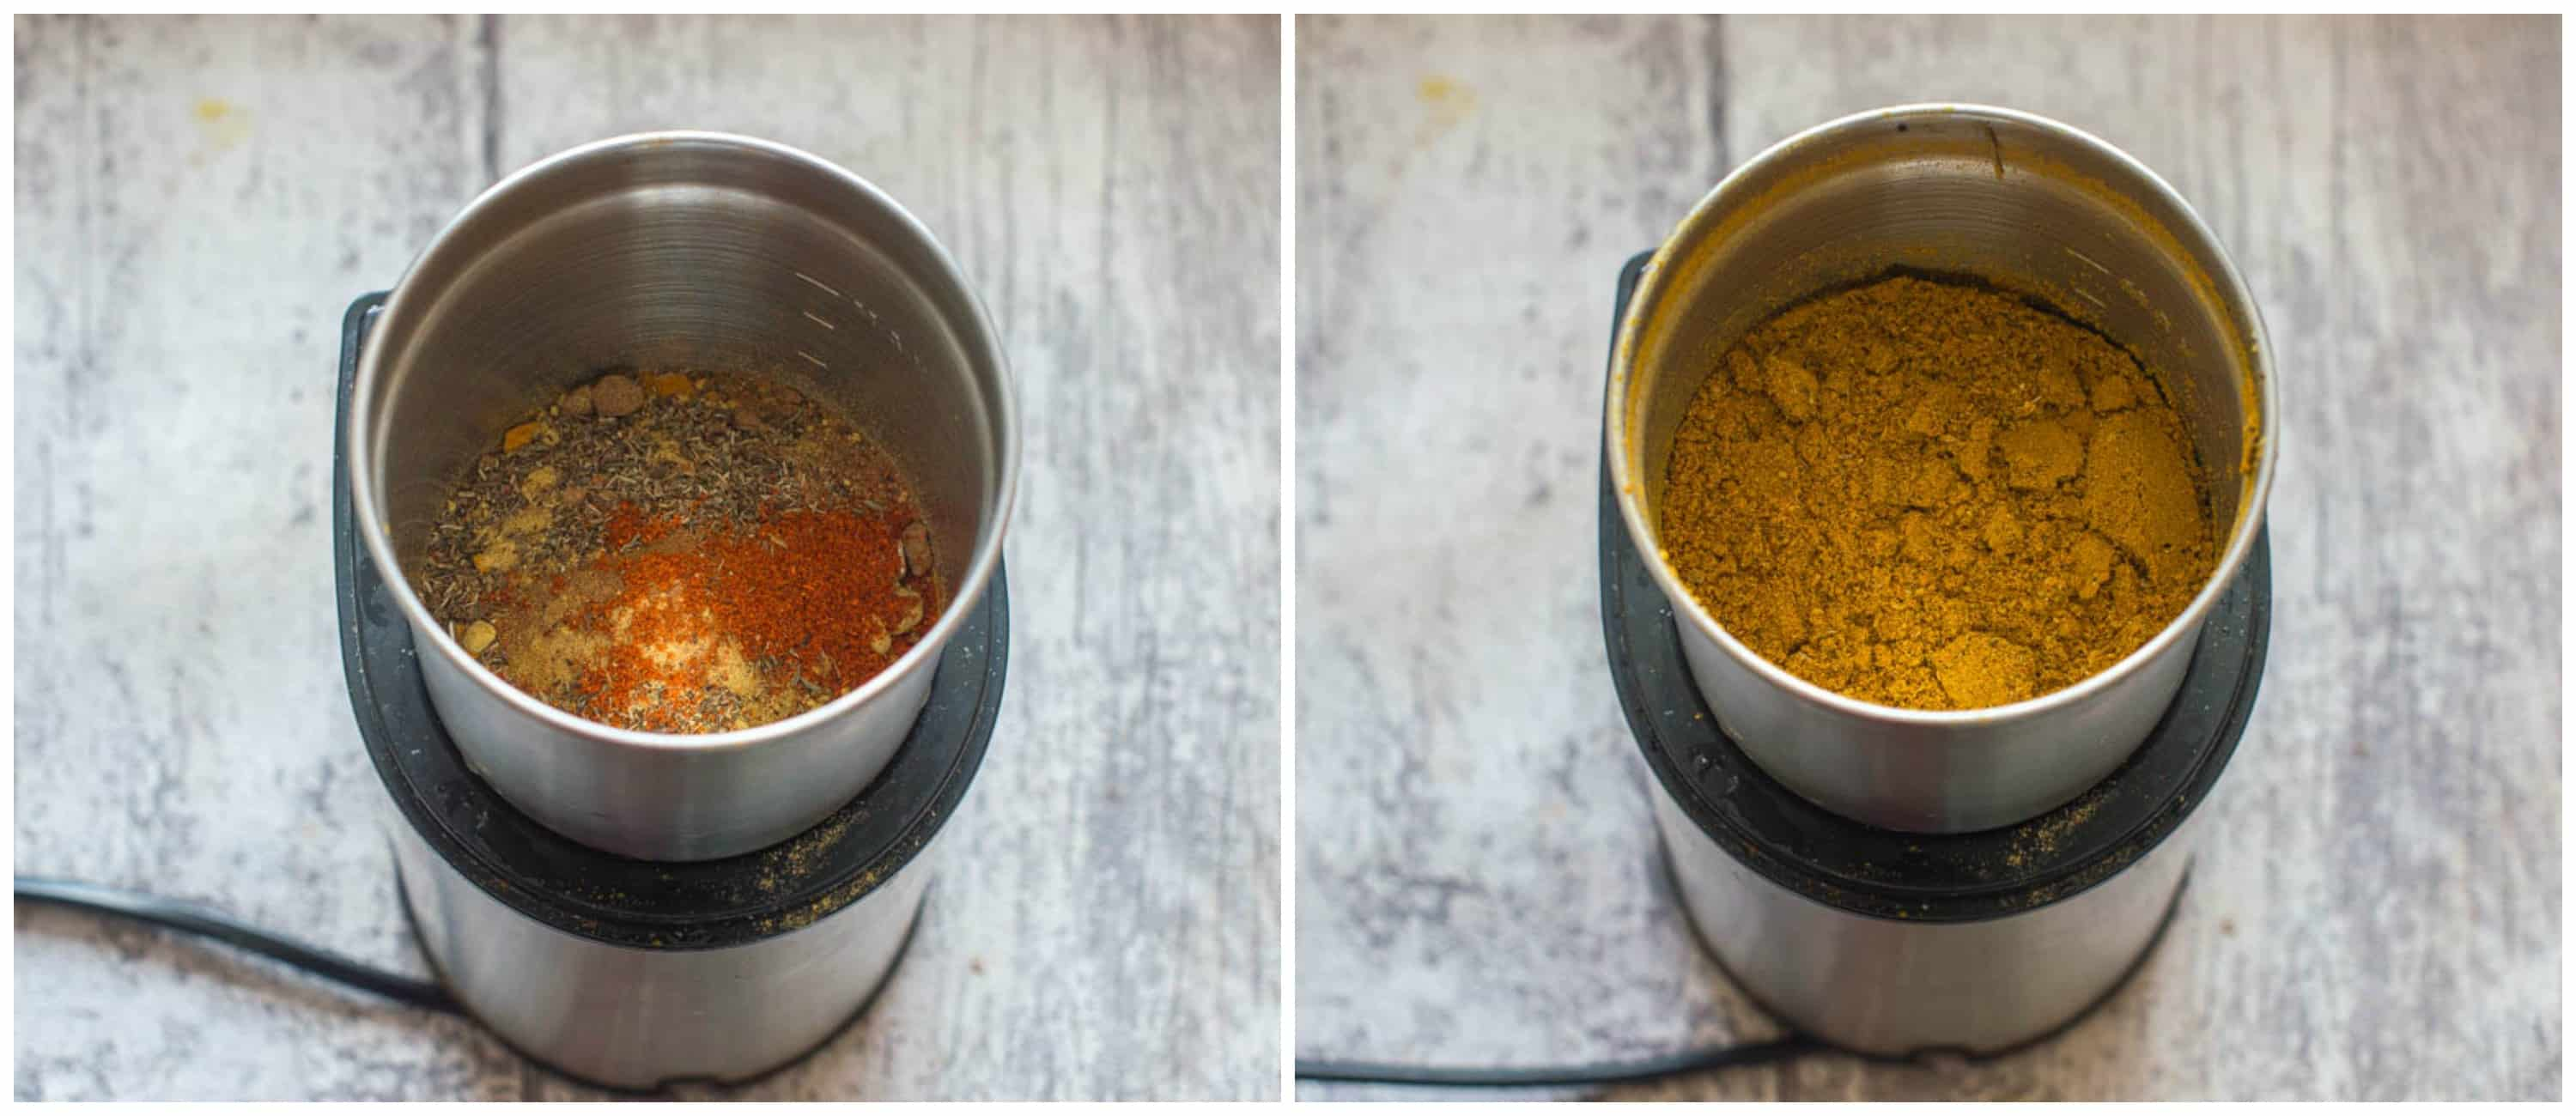 Jamaican curry powder steps 5 6 - Jamaican curry powder